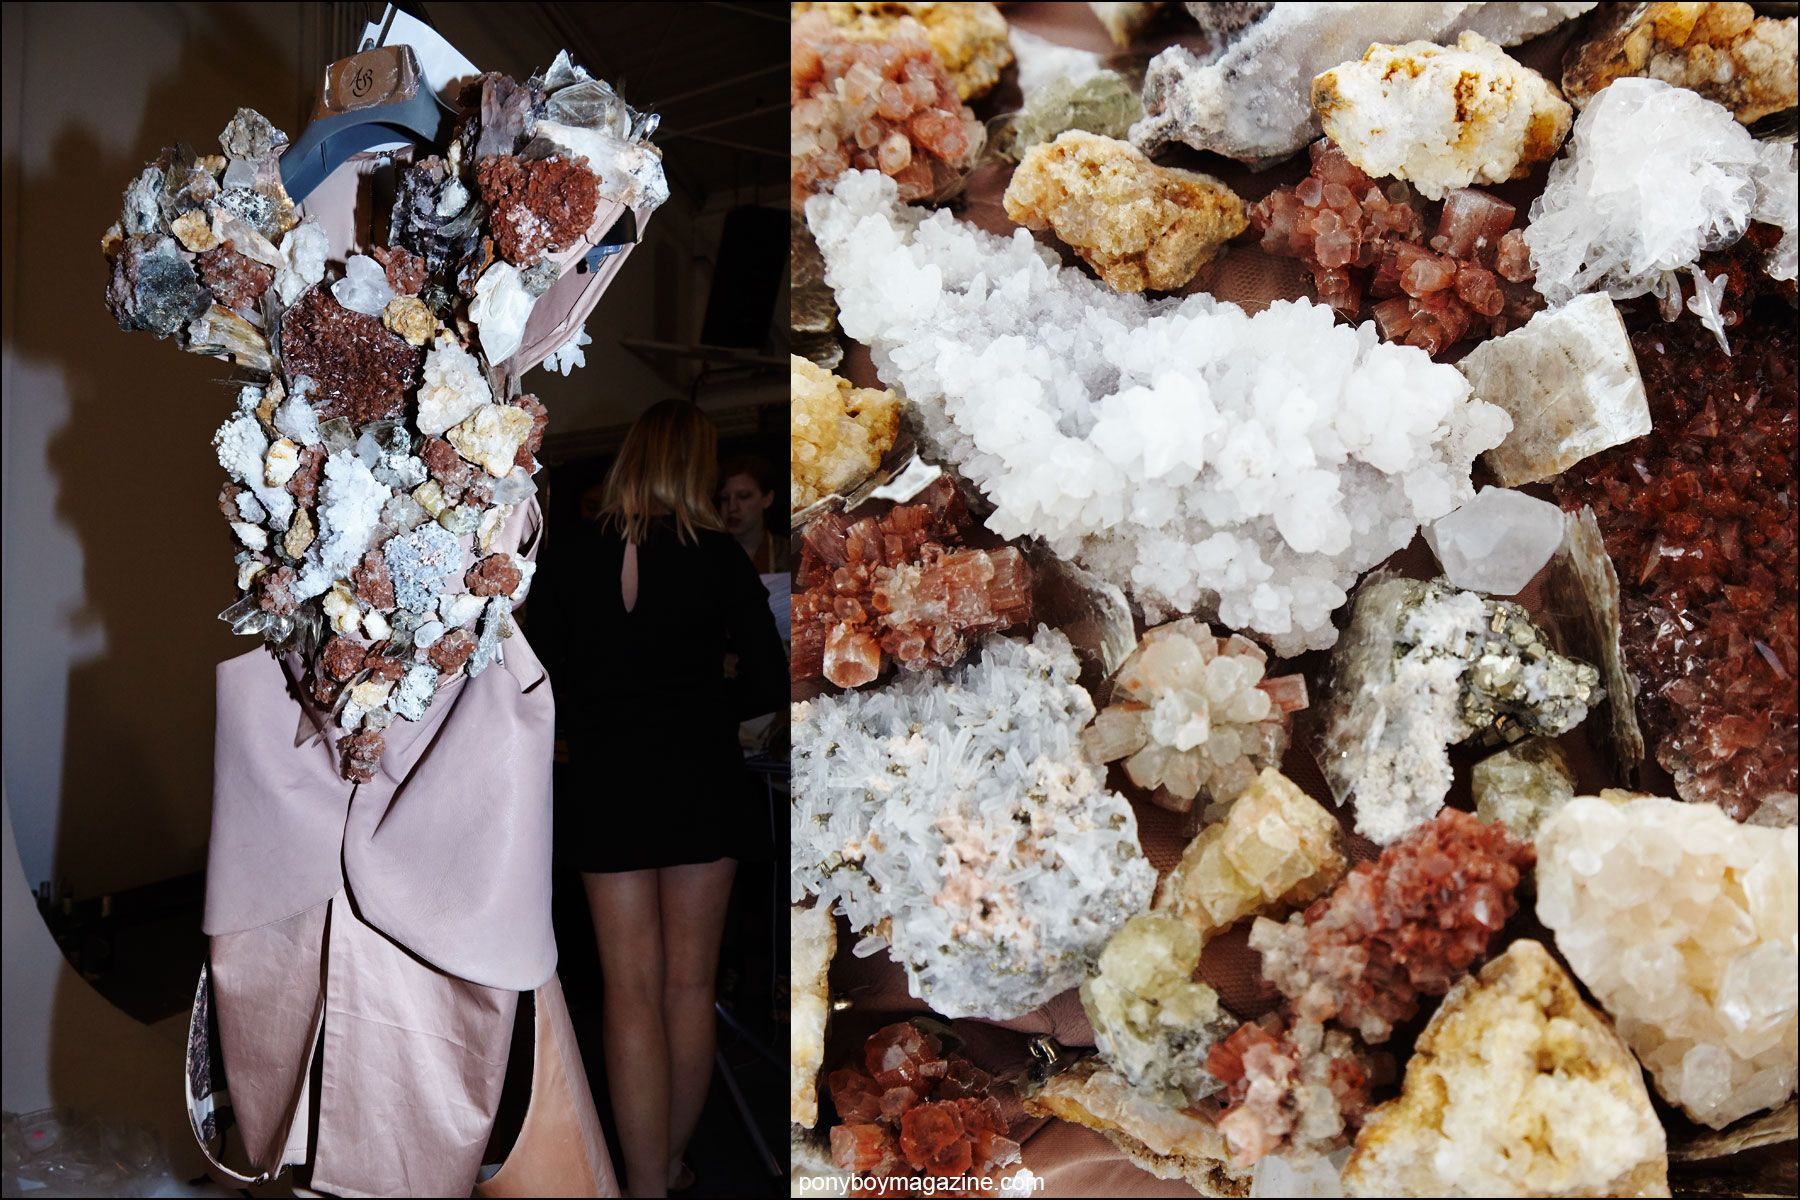 Detail shots of a crystal encrusted bodice photographed backstage at the threeASFOUR Spring/Summer 2016 show. Photographs by Alexander Thompson for Ponyboy magazine NY.